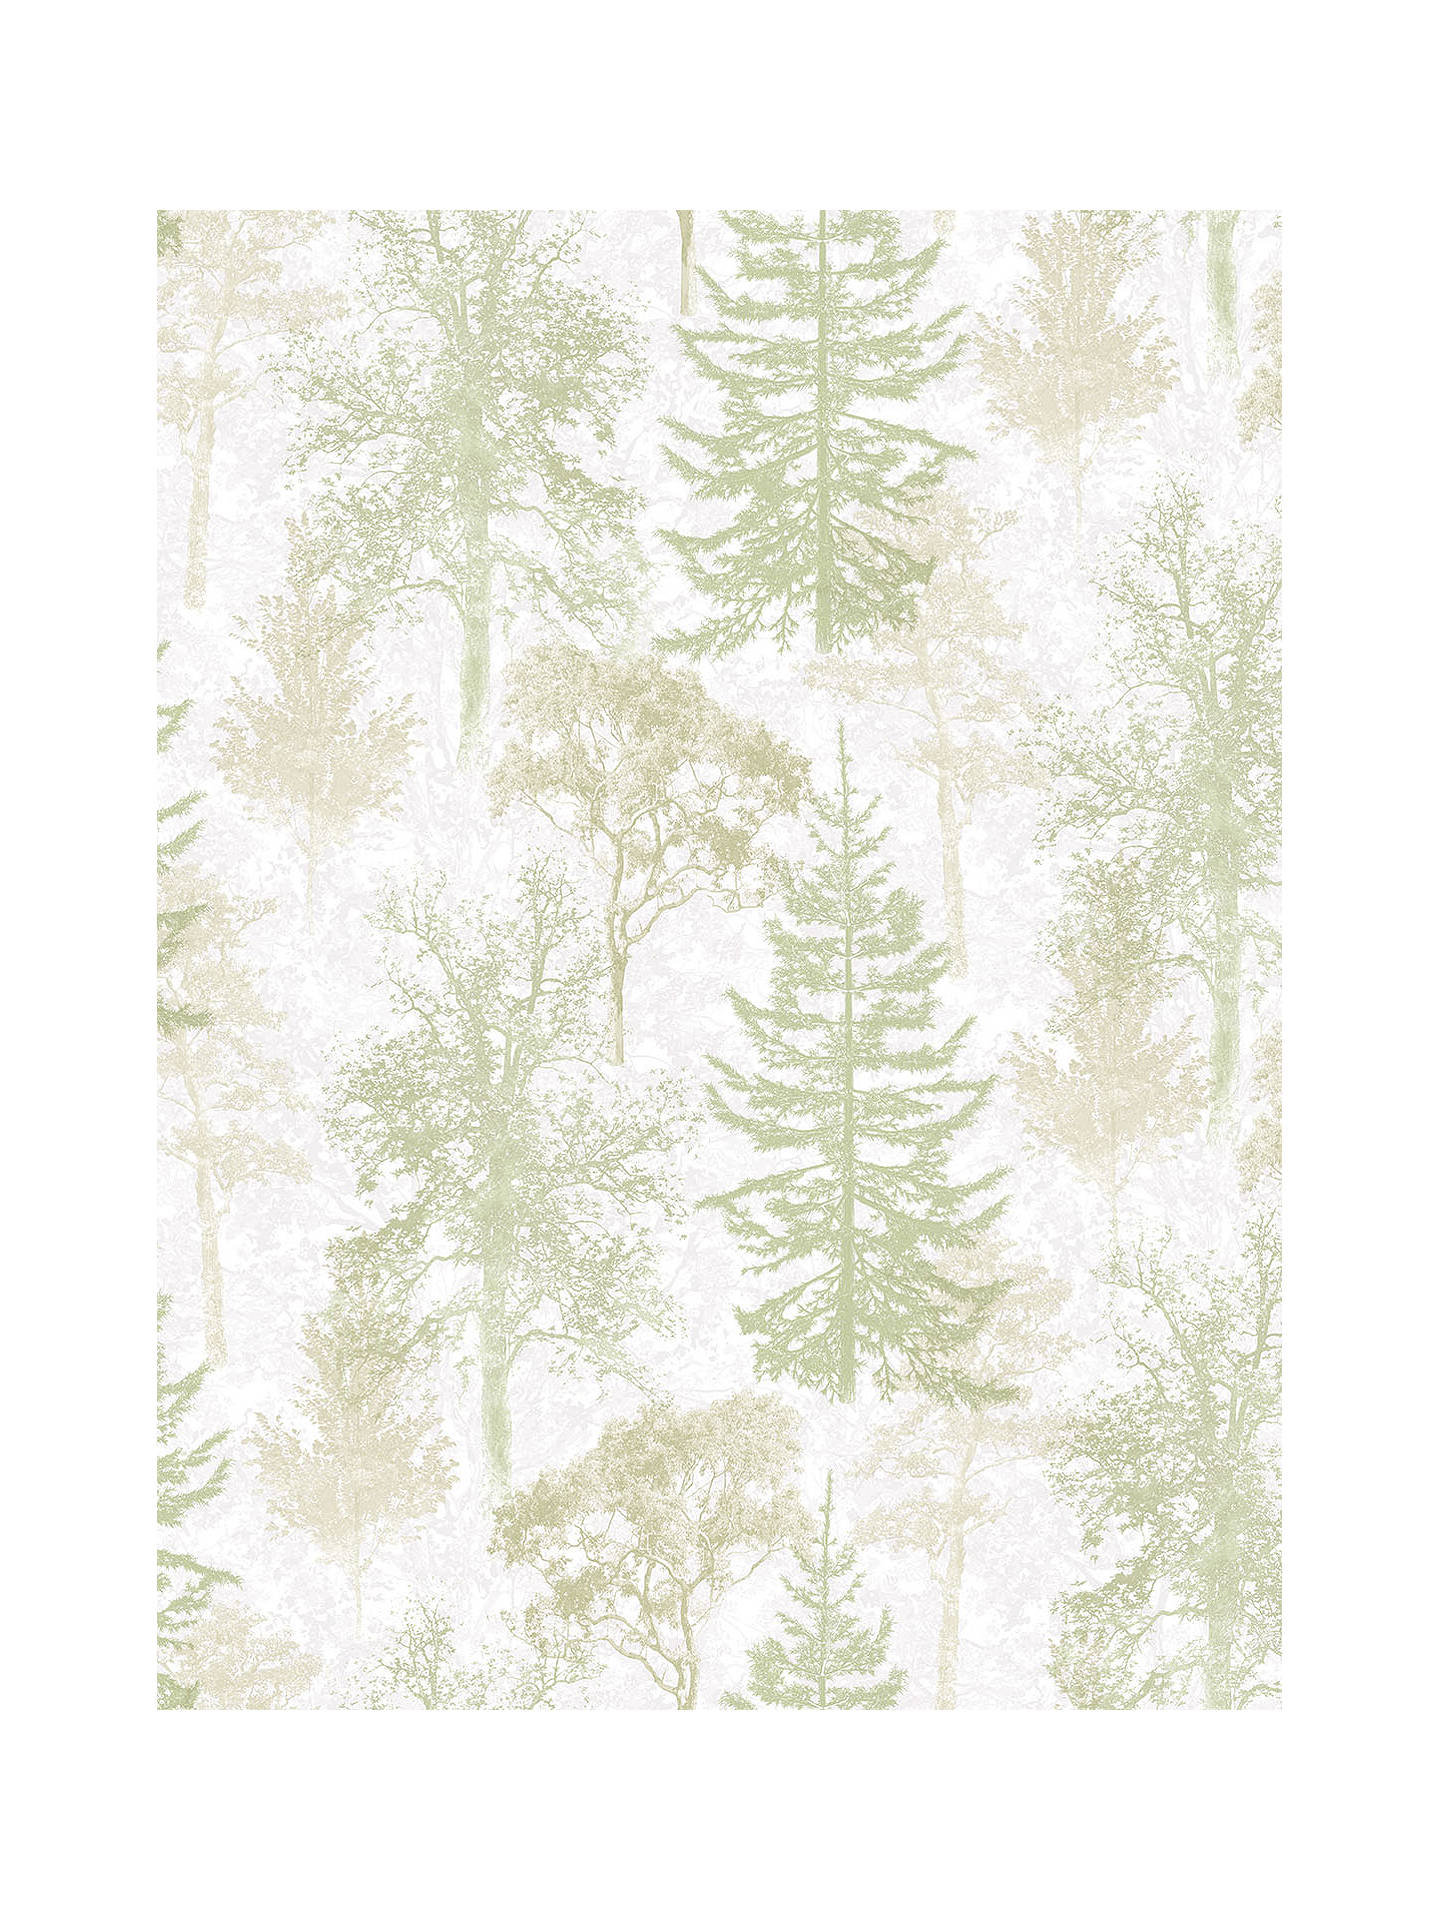 Buy Galerie Trees Wallpaper, 7310 Online at johnlewis.com